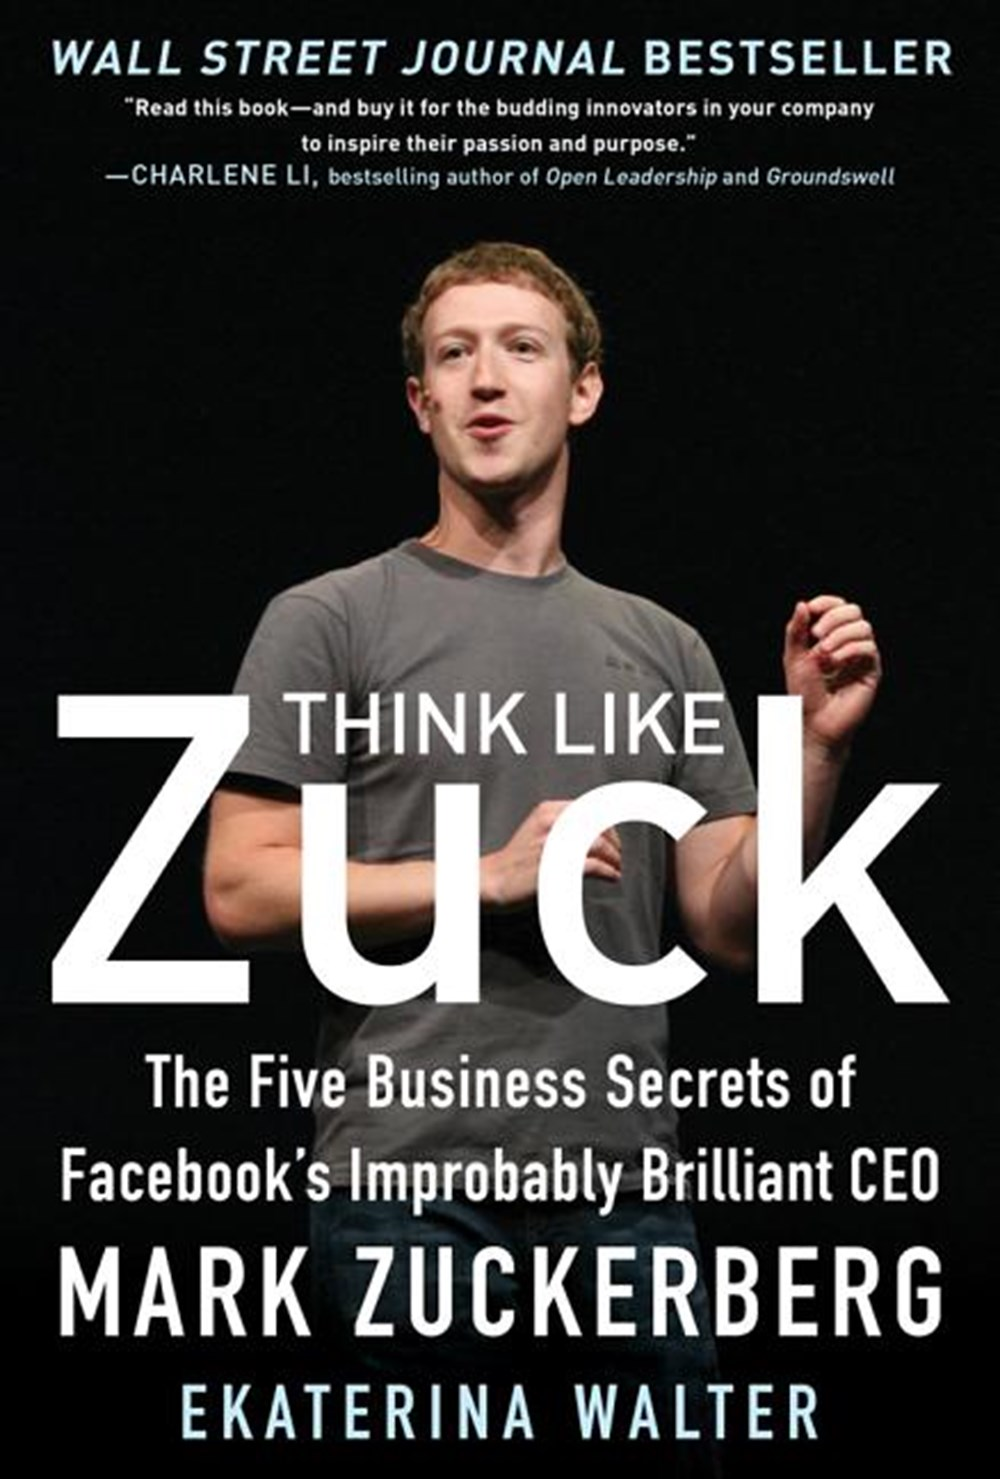 Think Like Zuck The Five Business Secrets of Facebook's Improbably Brilliant CEO Mark Zuckerberg